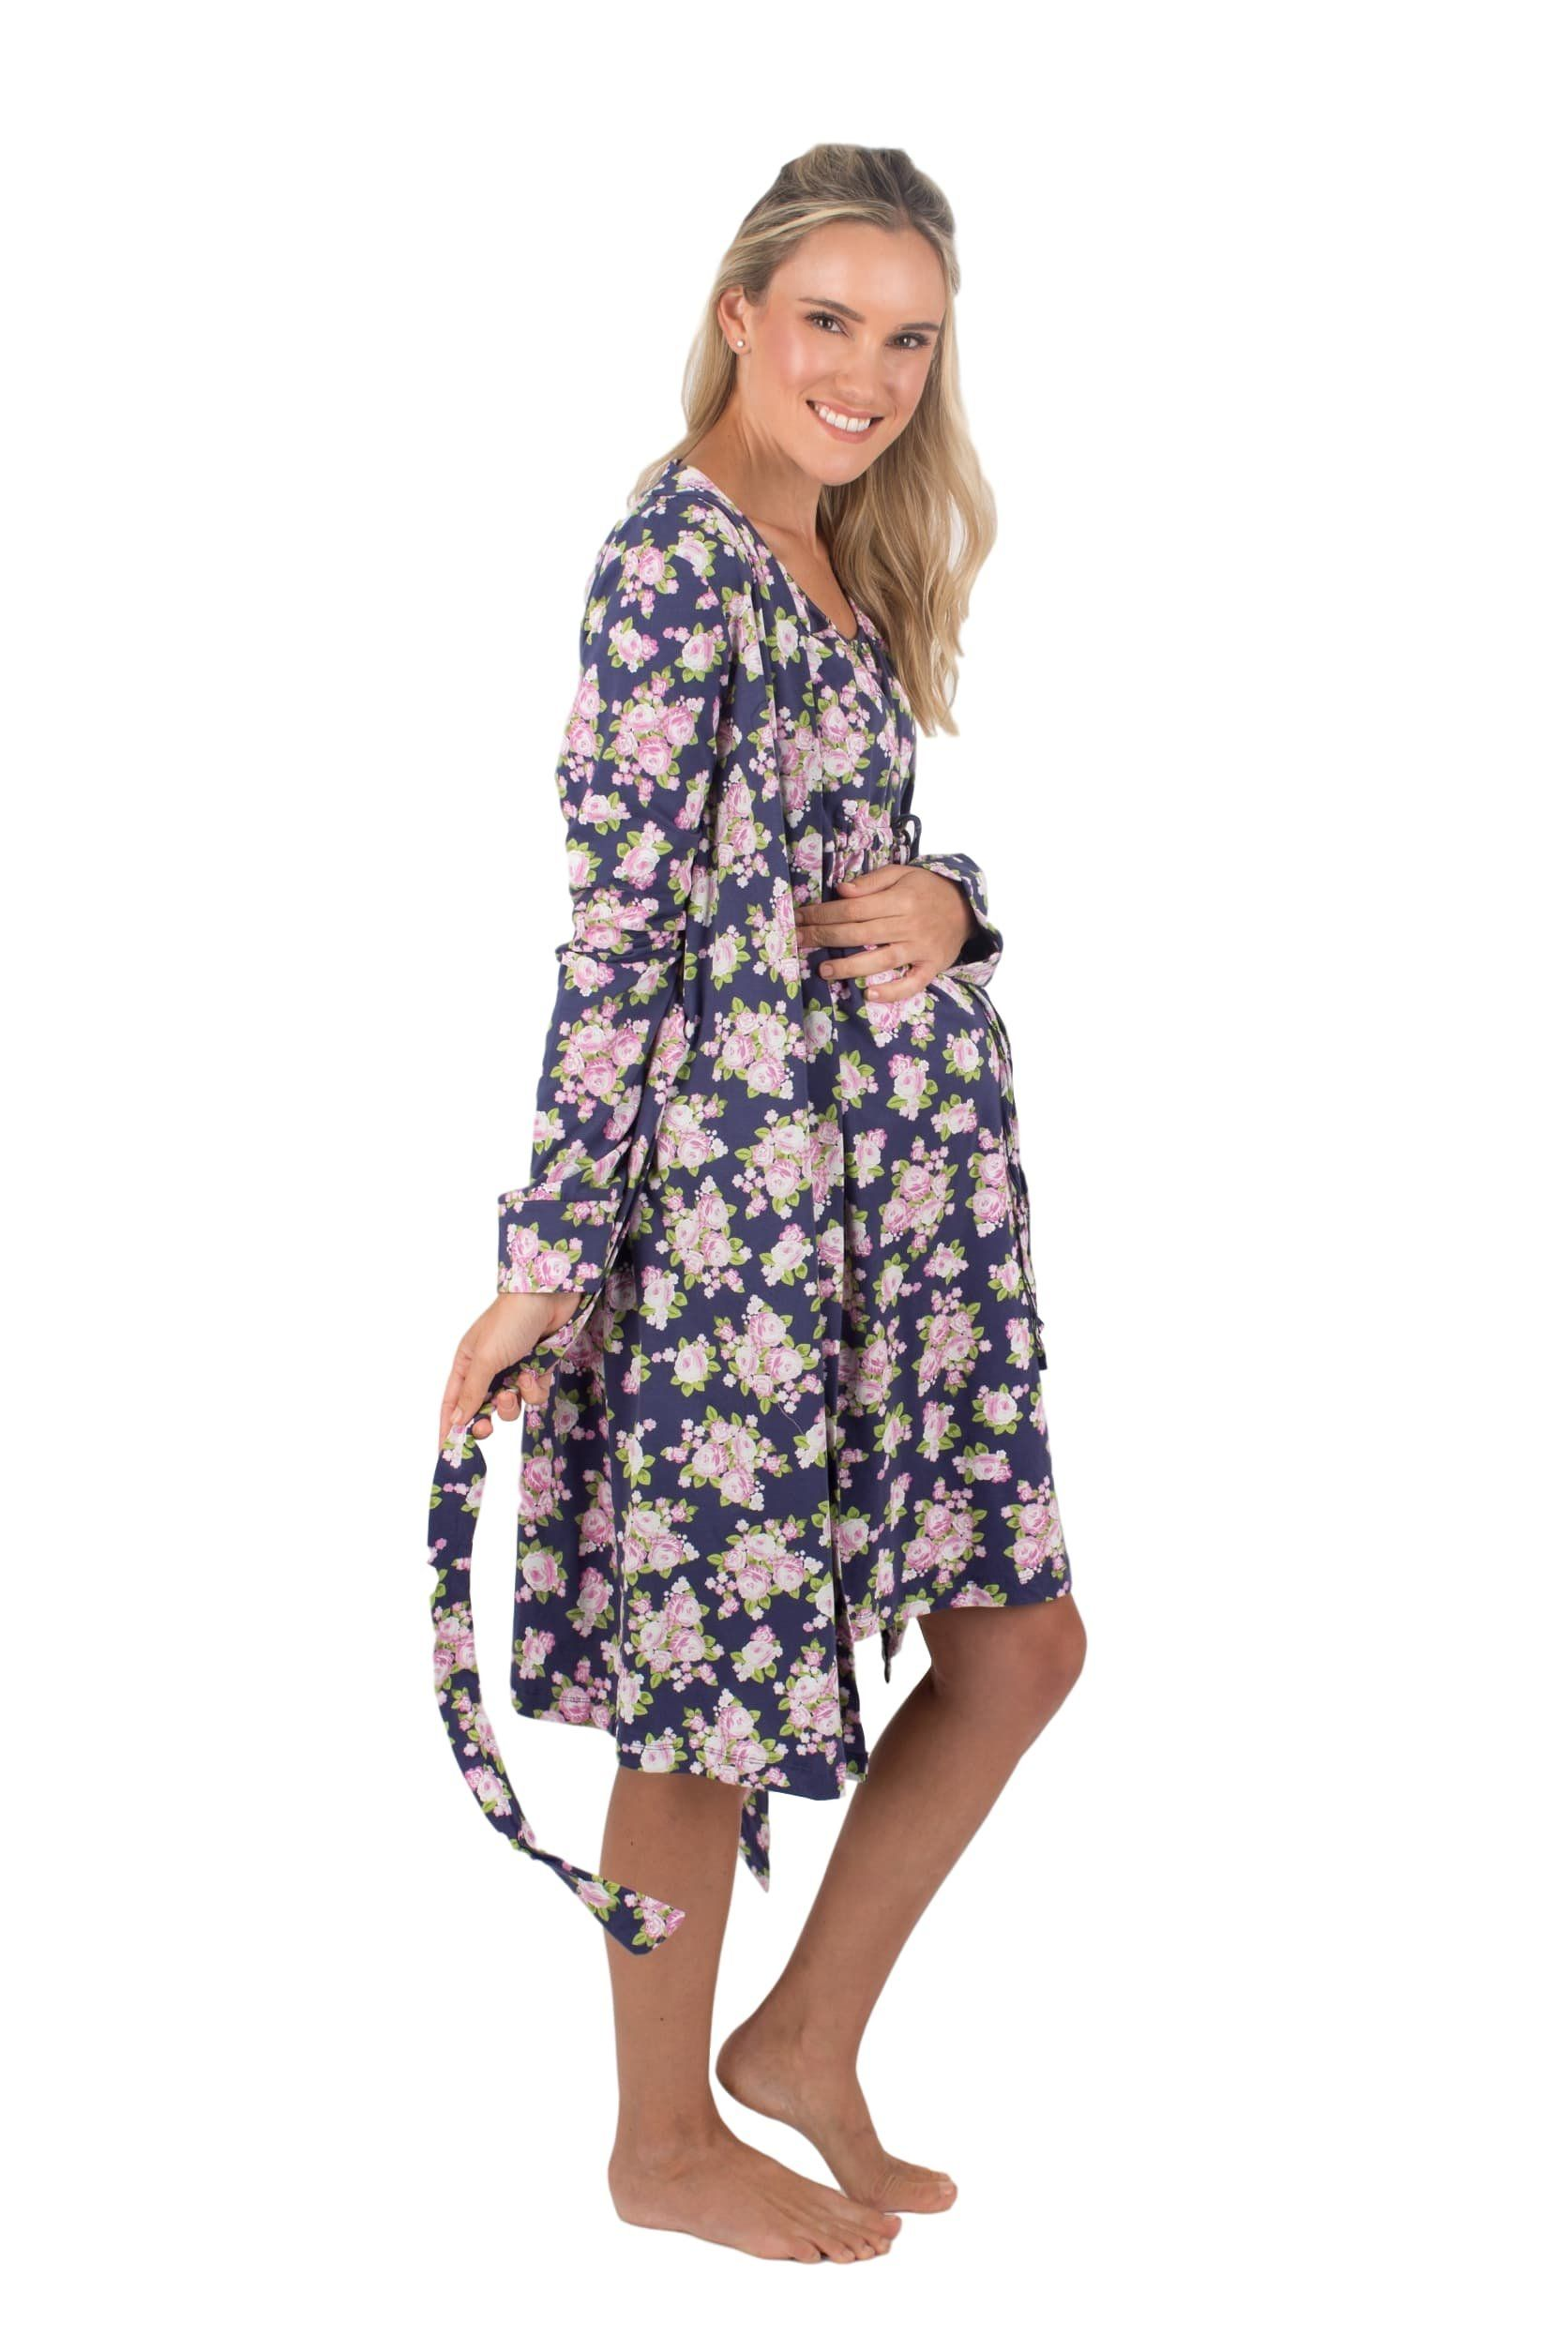 9113c11a763c9 nursing tops - Baby Be Mine 3 In 1 Maternity Labor delivery Nursing Hospital  birthing Gown and Matching Robe S/M Pre Pregnancy 212 Eve *** See the image  web ...